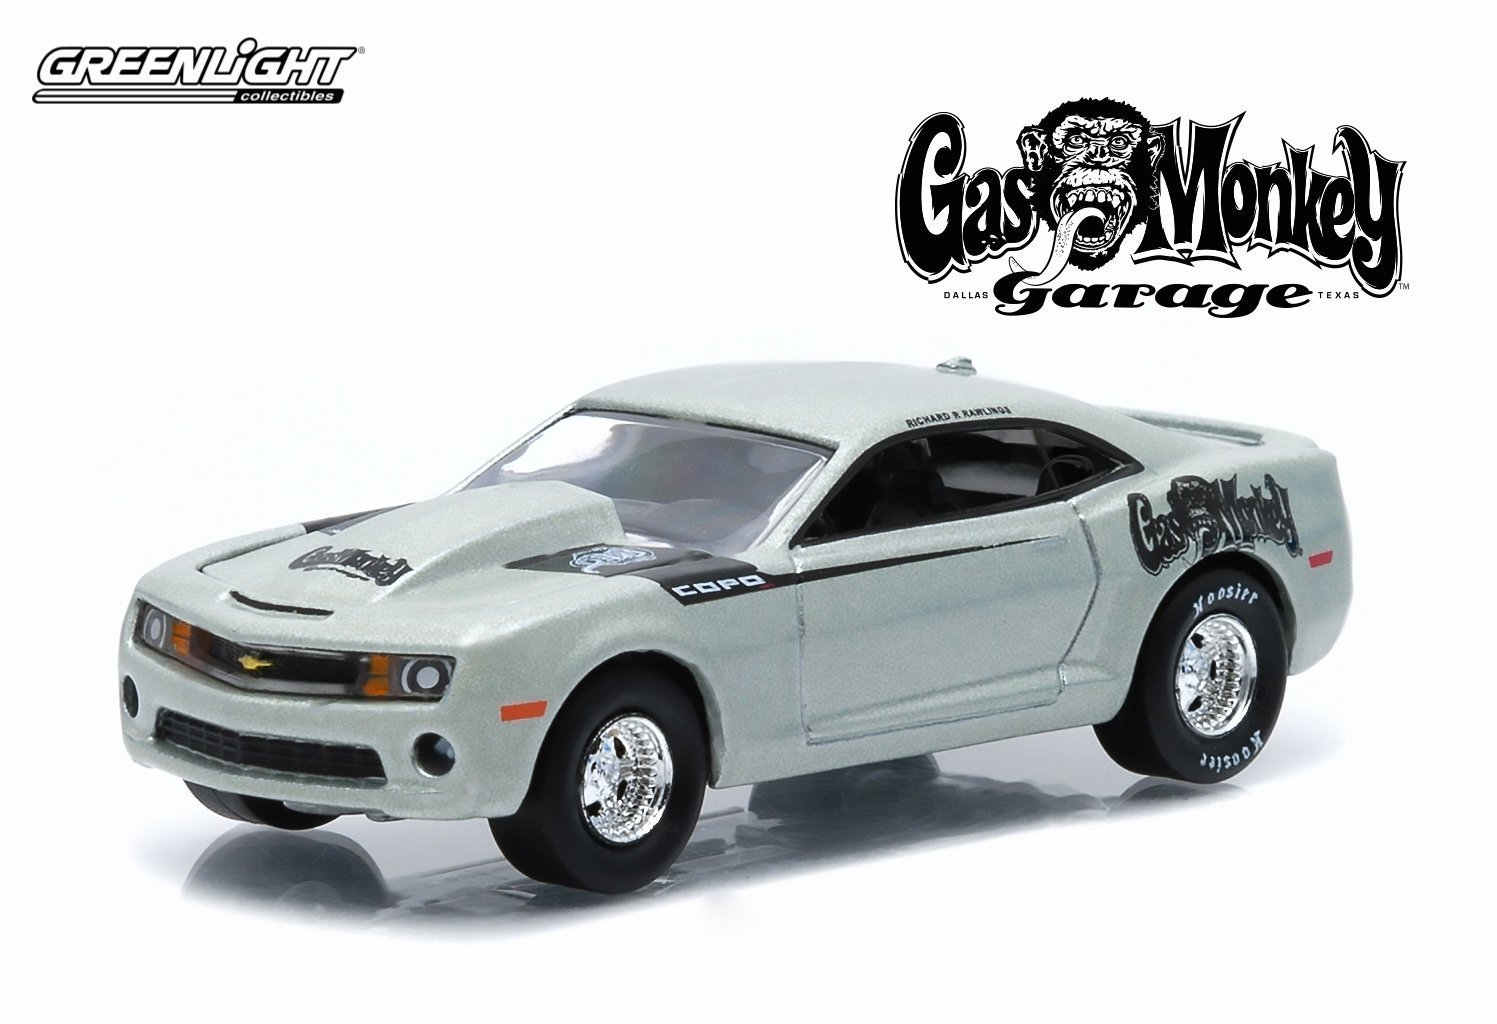 Buy 2013 CHEVROLET COPO CAMARO from the show GAS MONKEY